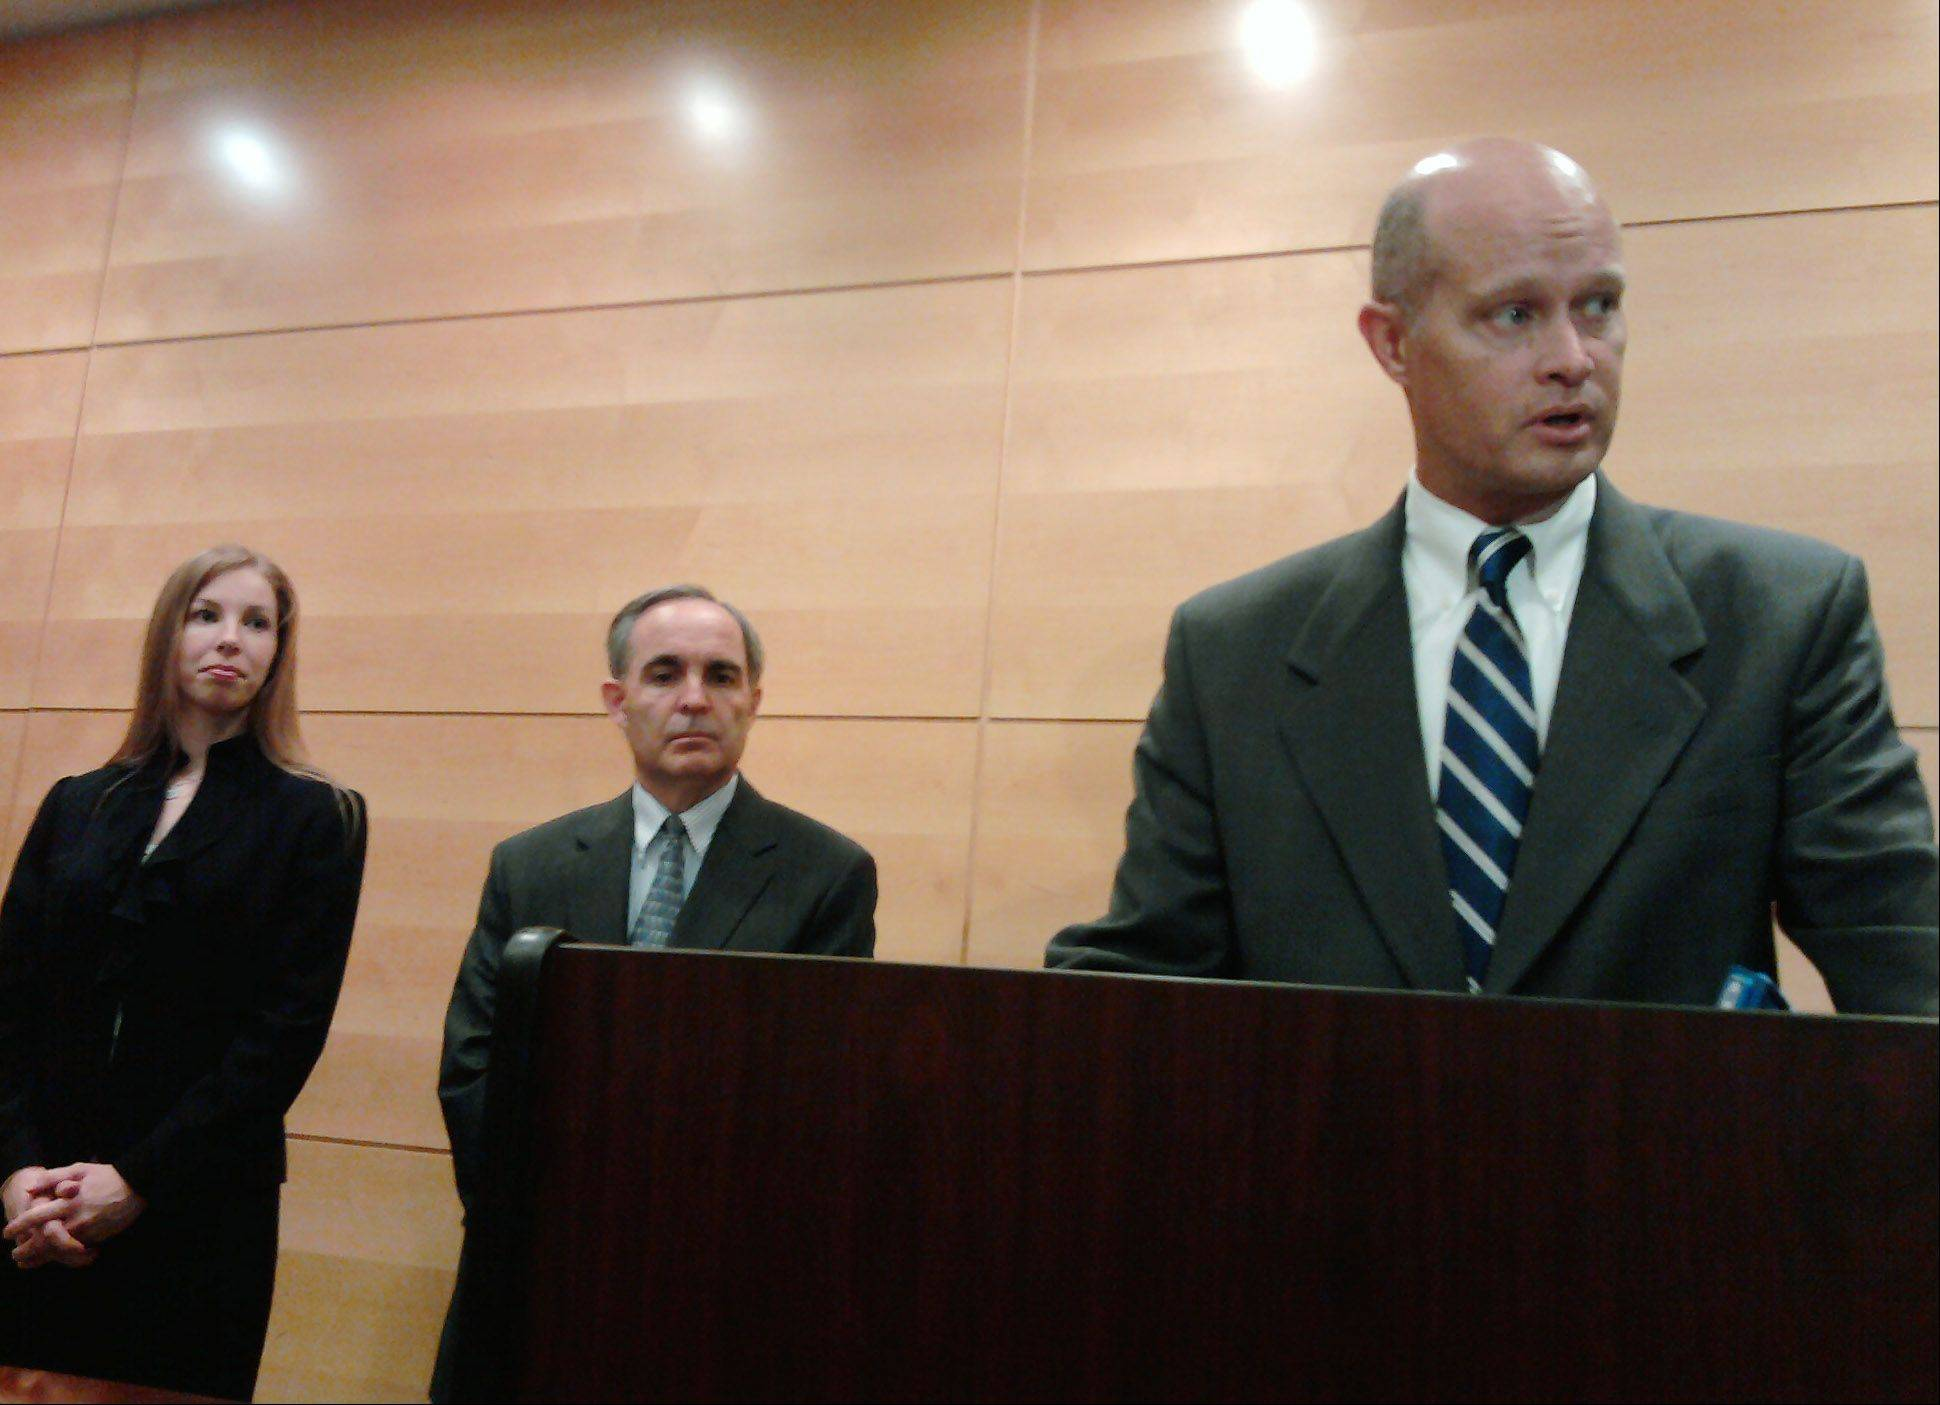 Kane County State's Attorney Joe McMahon, right, discusses the Timera Branch guilty verdict Thursday. From left are Assistant State's Attorneys Reagan McGuire and Greg Sams, both of whom prosecuted the case. Branch could get up to 60 years in prison when she is sentenced Sept. 28.